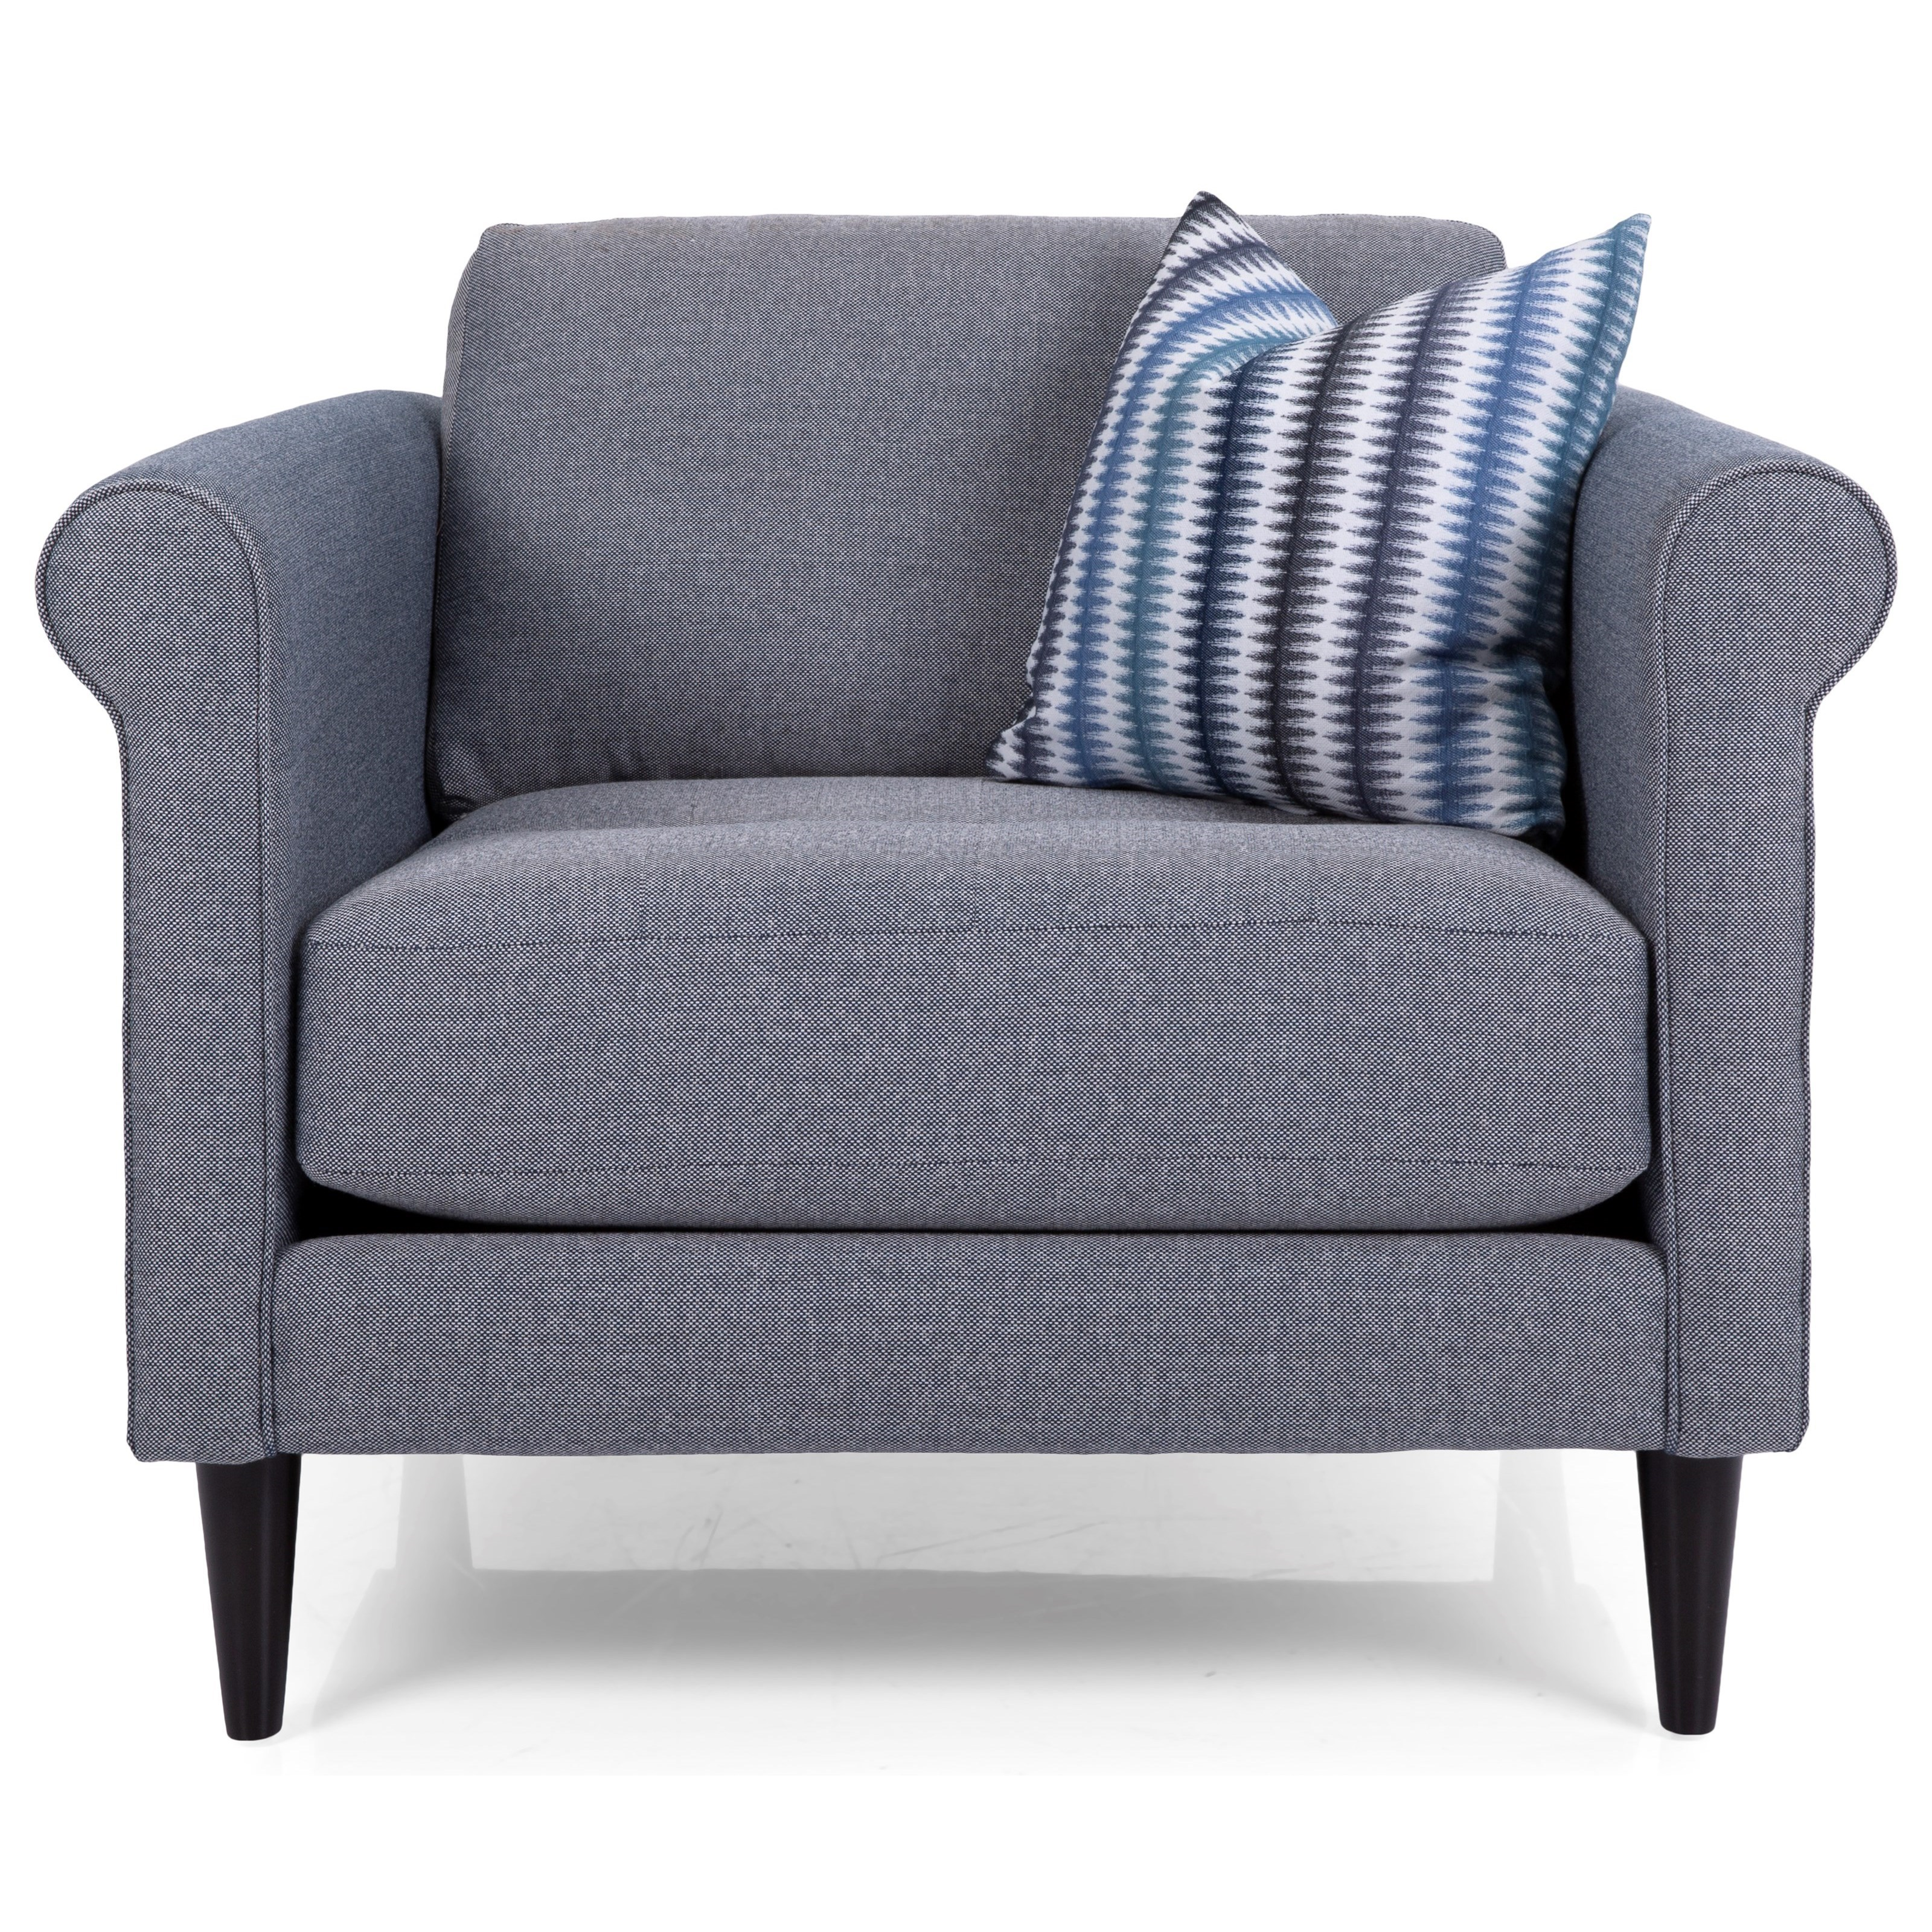 2M1 Chair and a Half by Decor-Rest at Rooms for Less